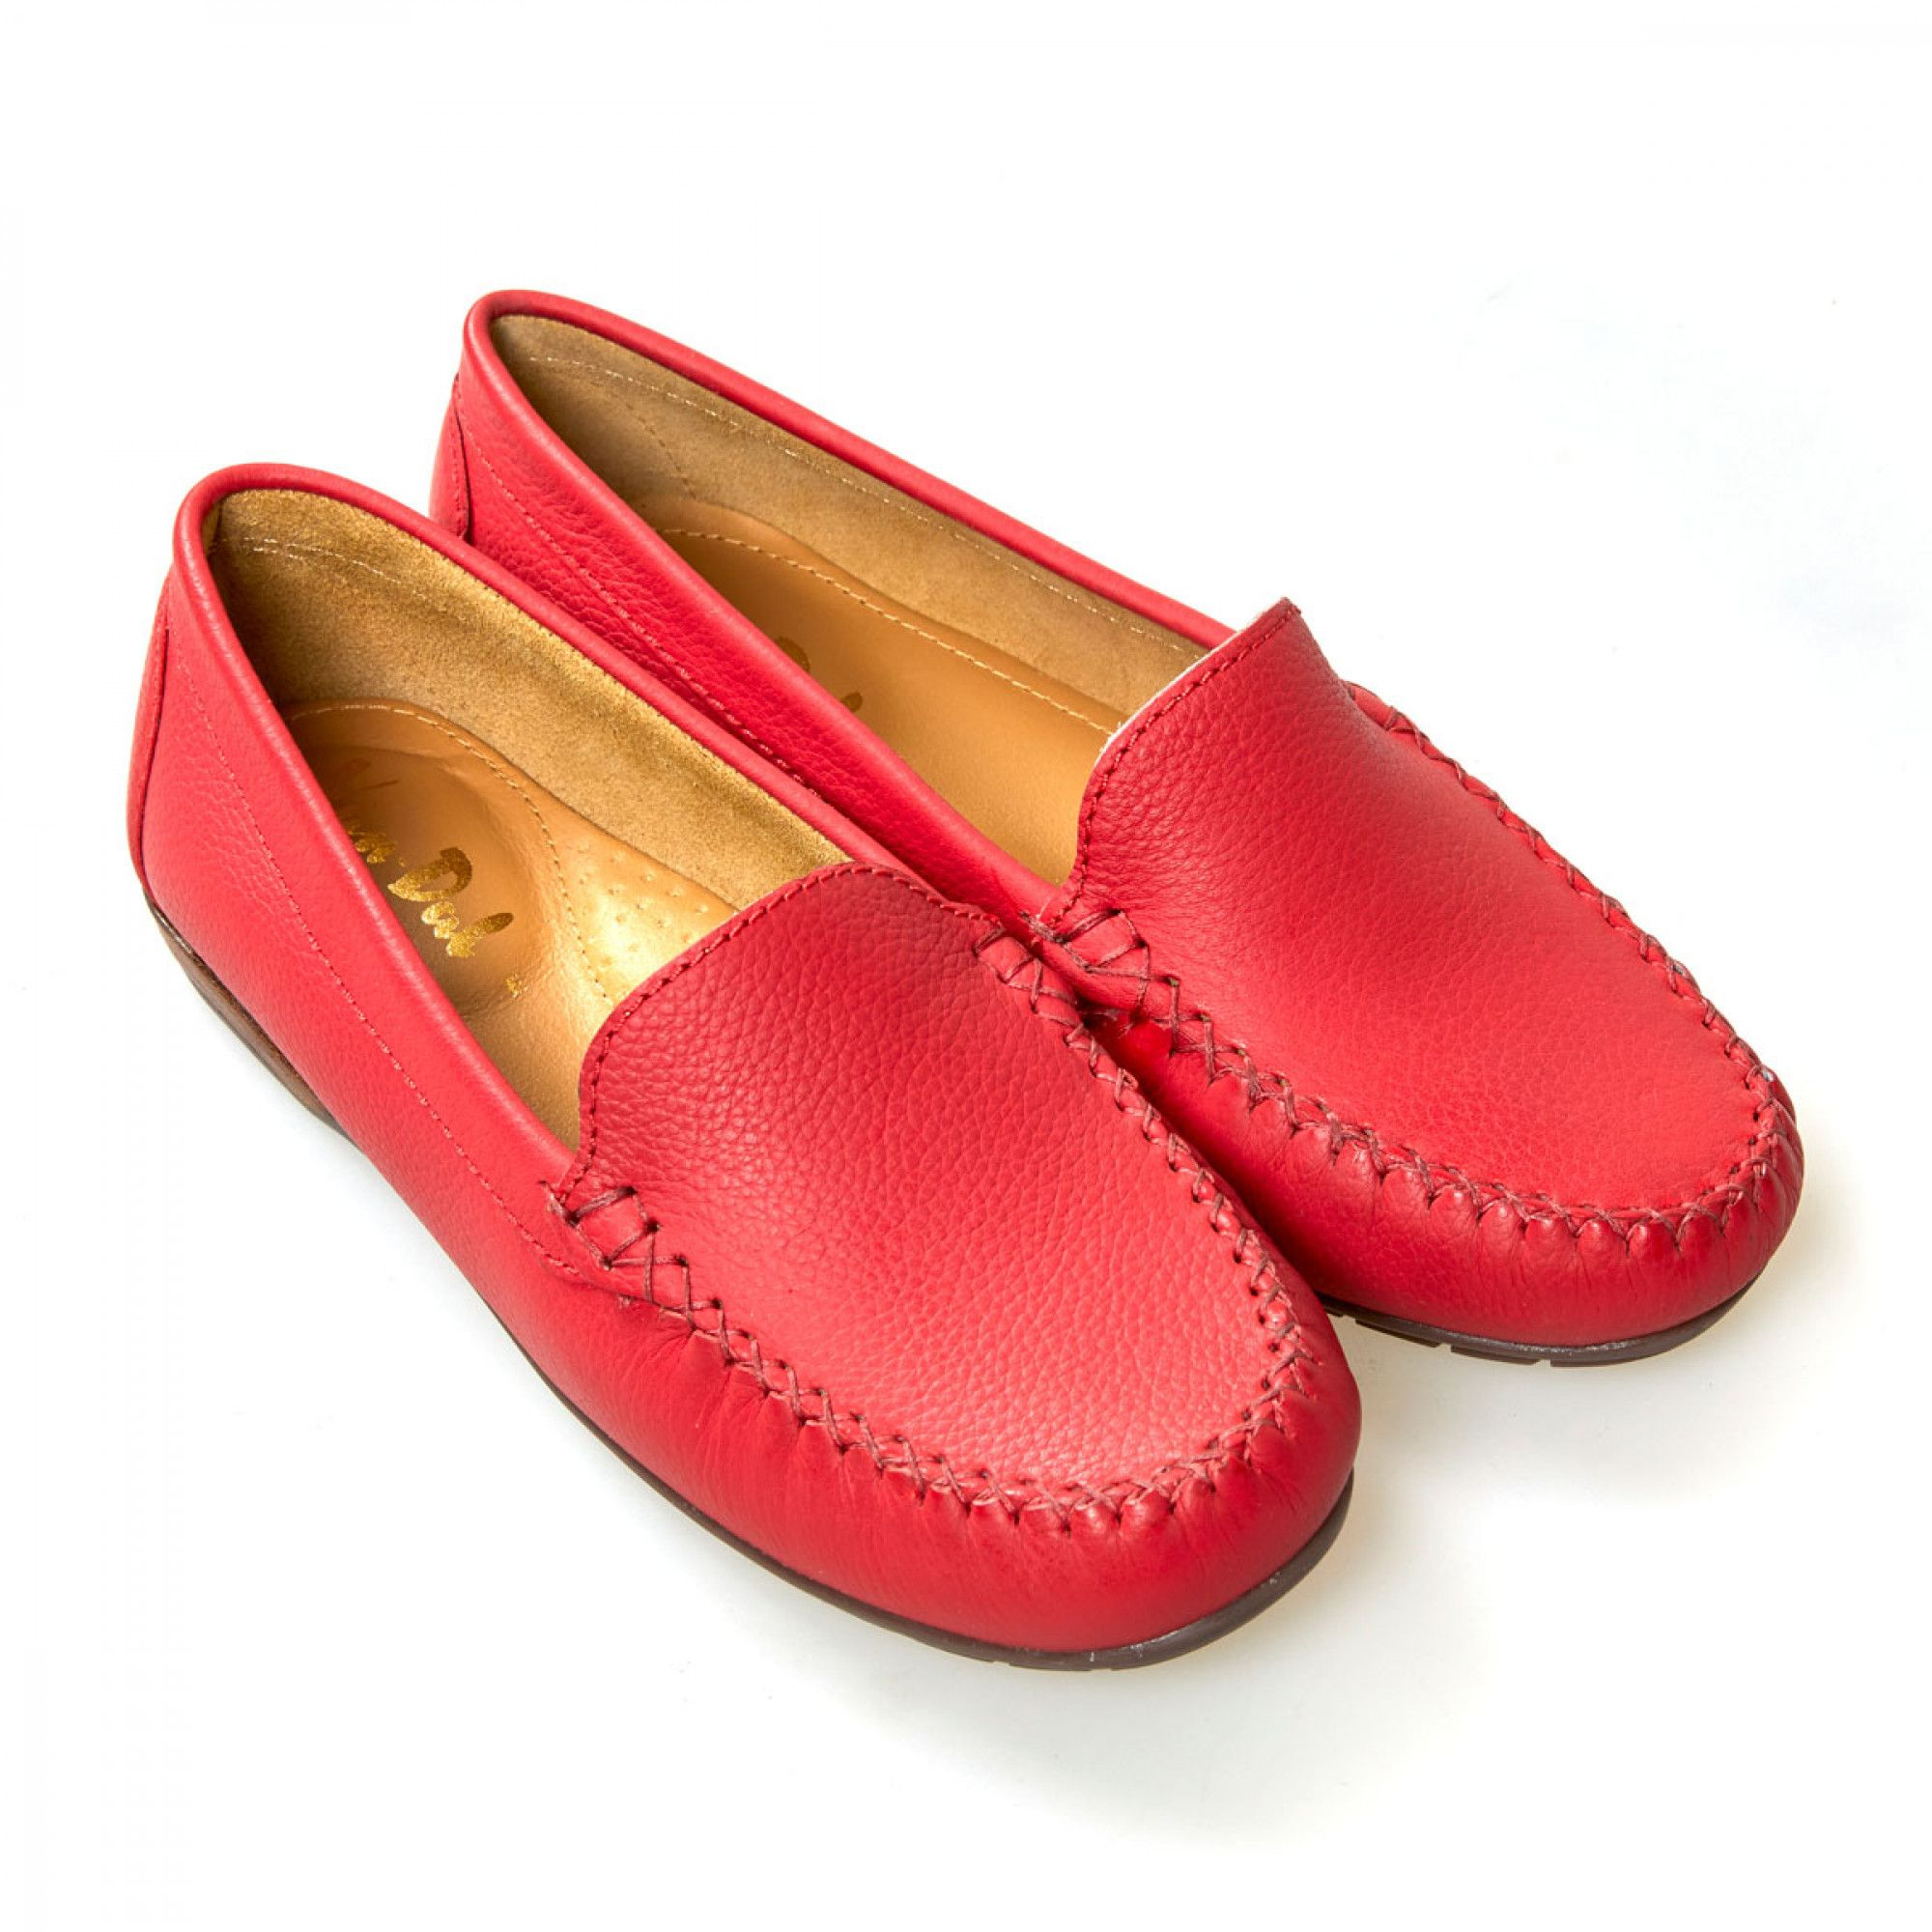 Van Dal Shoes - Jemima X Loafers in Red Leather | Weekend shoes ...